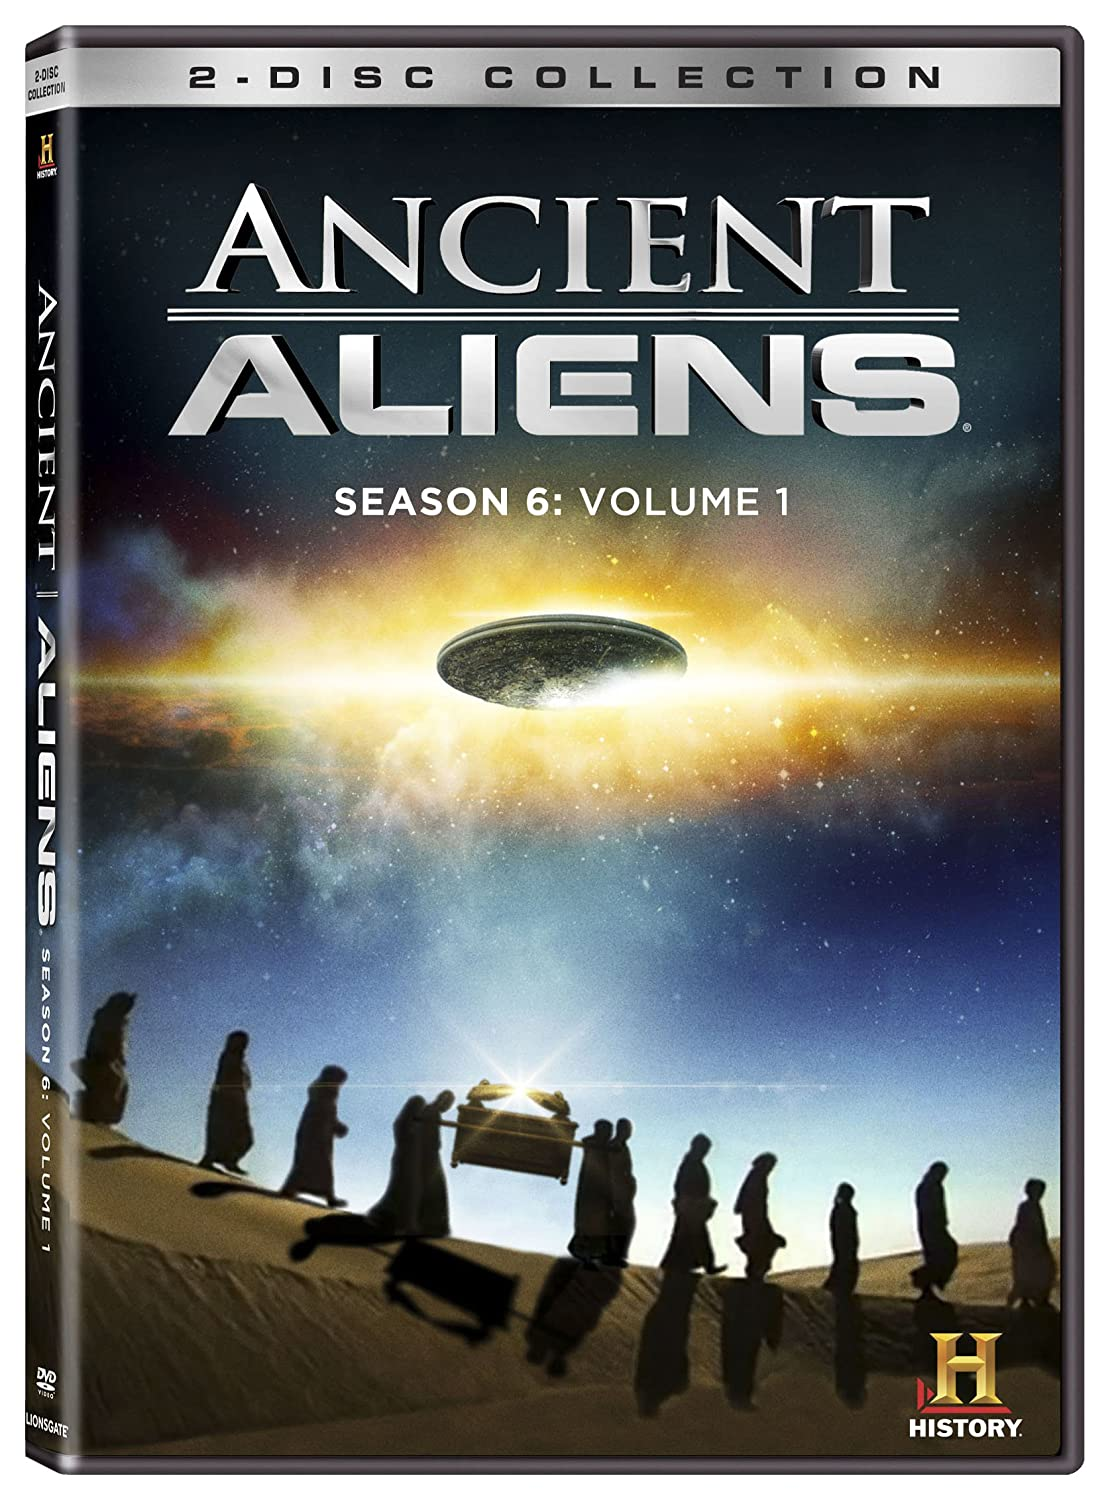 Ancient Aliens: Season 6, Volume 1